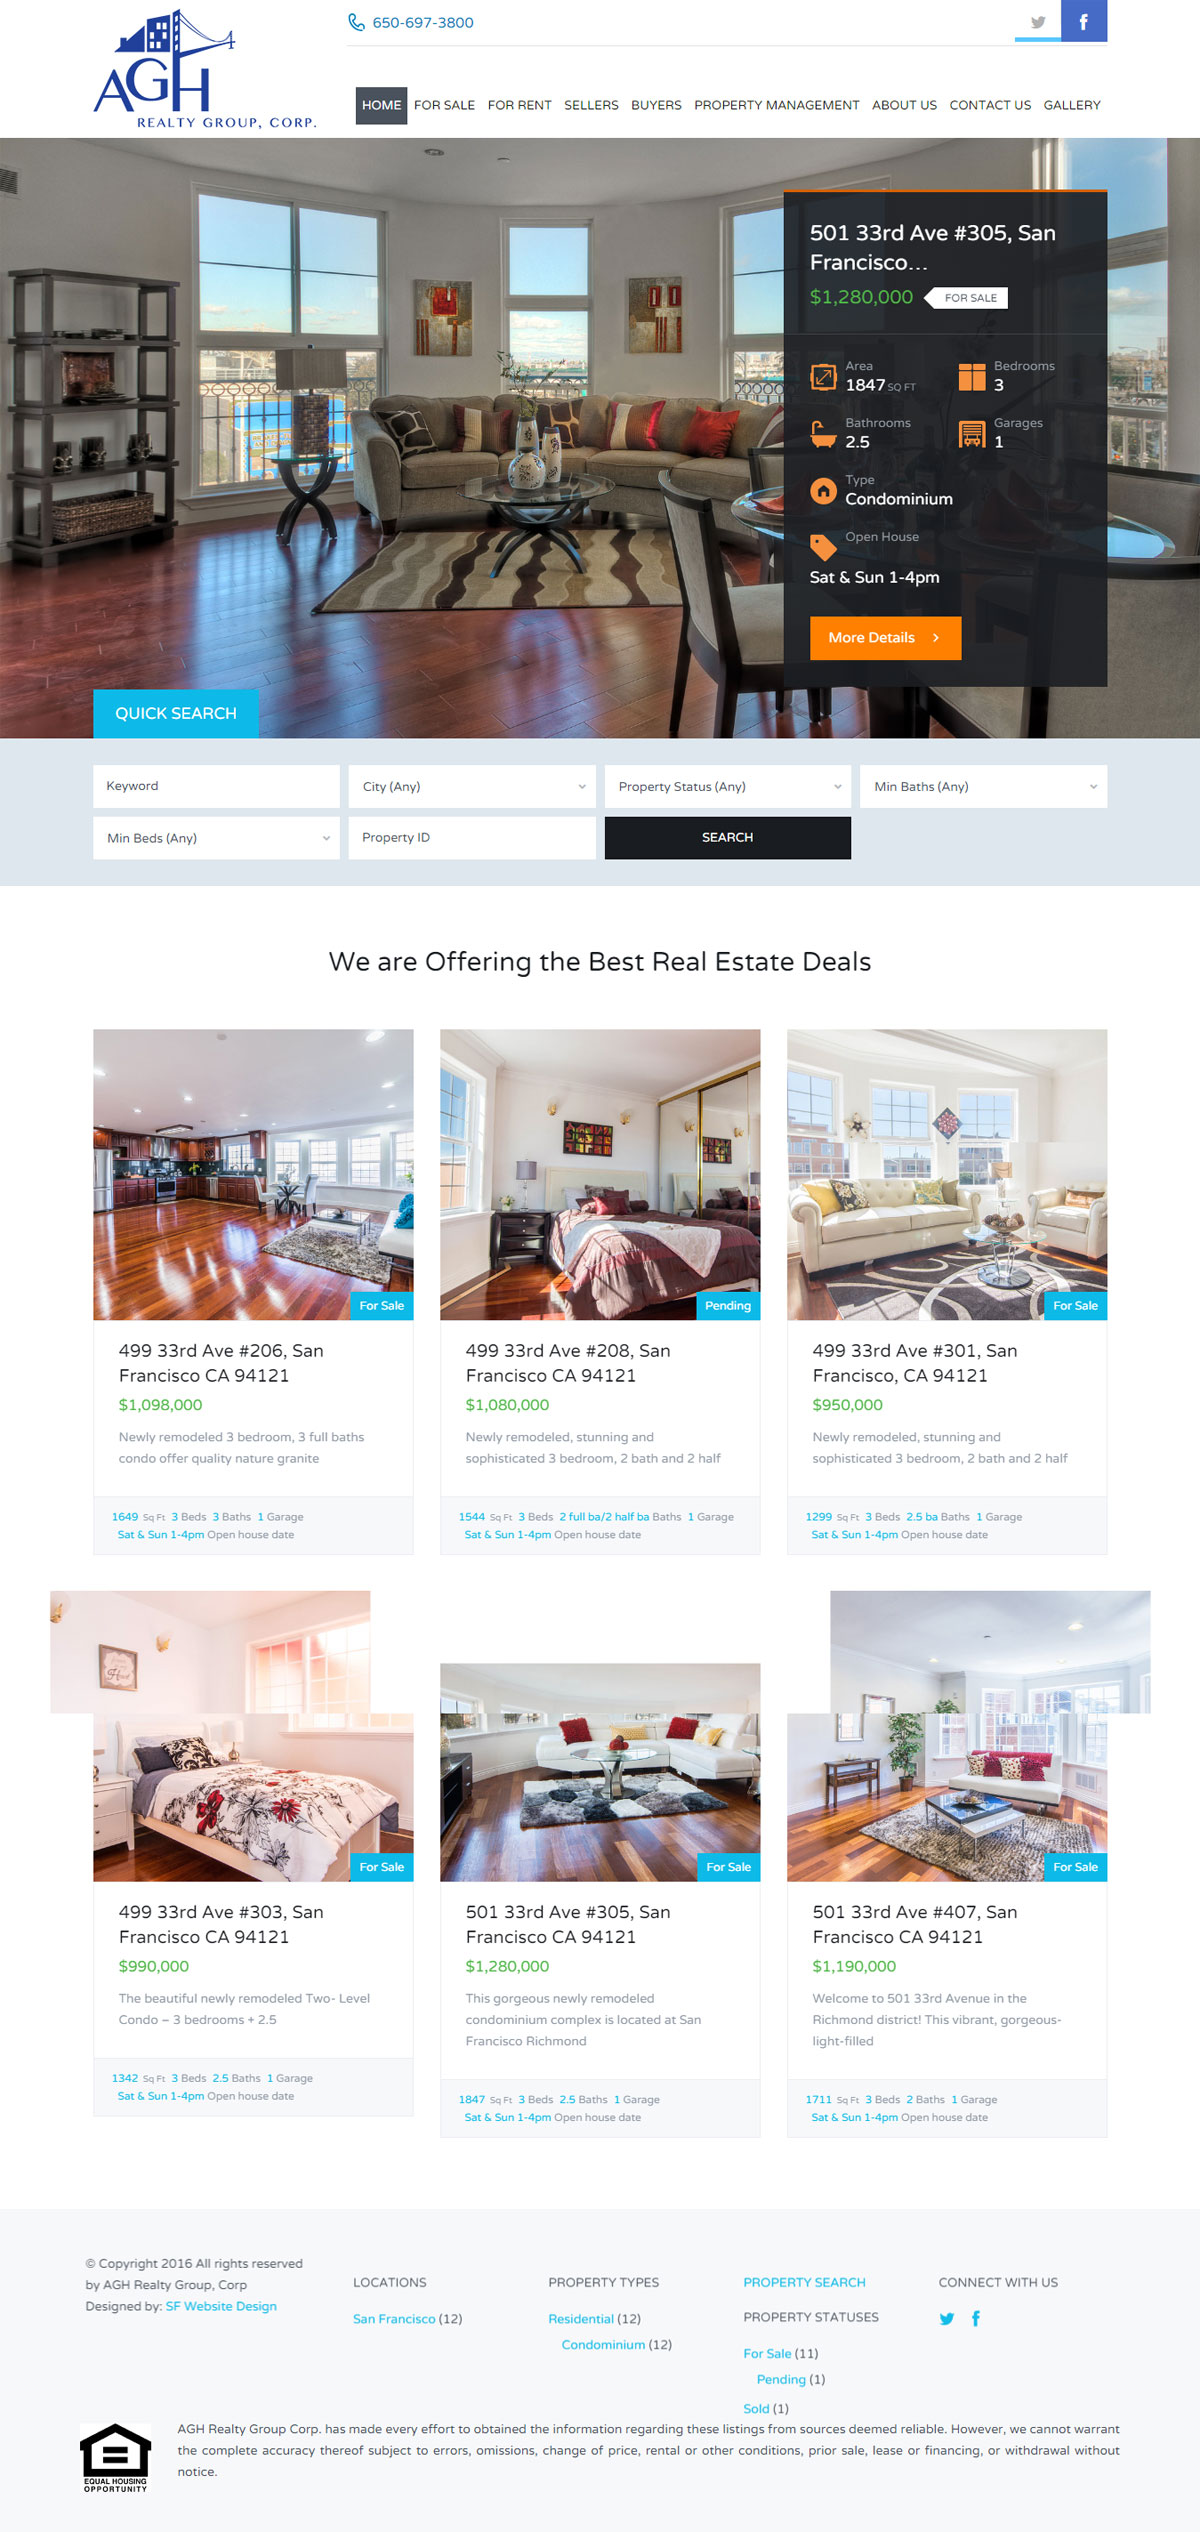 AGH-Realty-Group-real-estate-website-design-in-San-Francisco